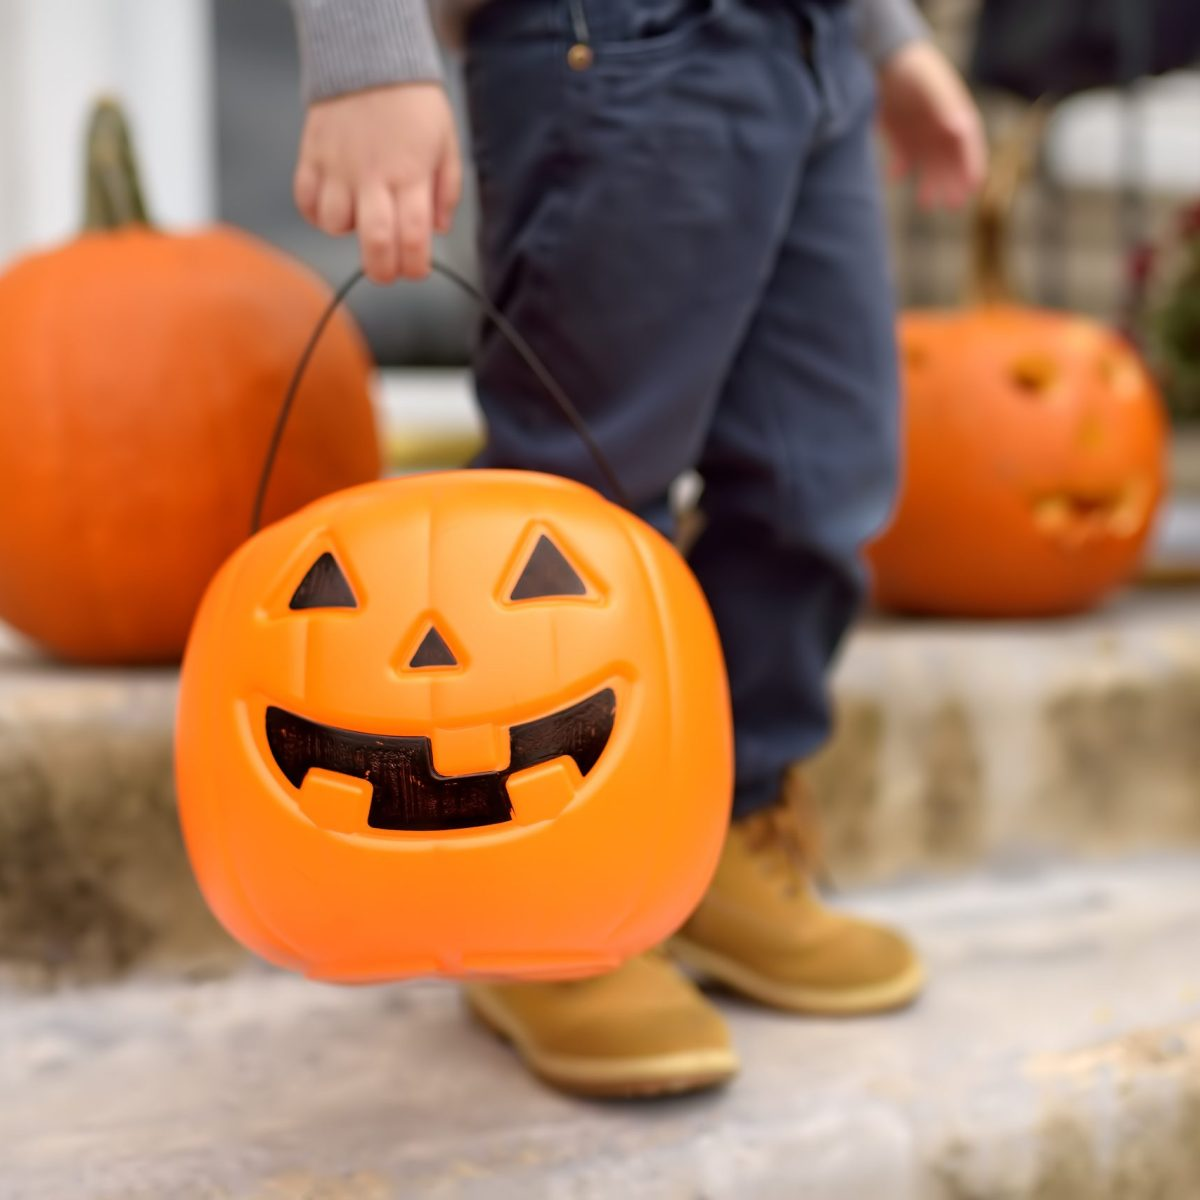 the 7th plano family expo trick or treat is an essential october to do!